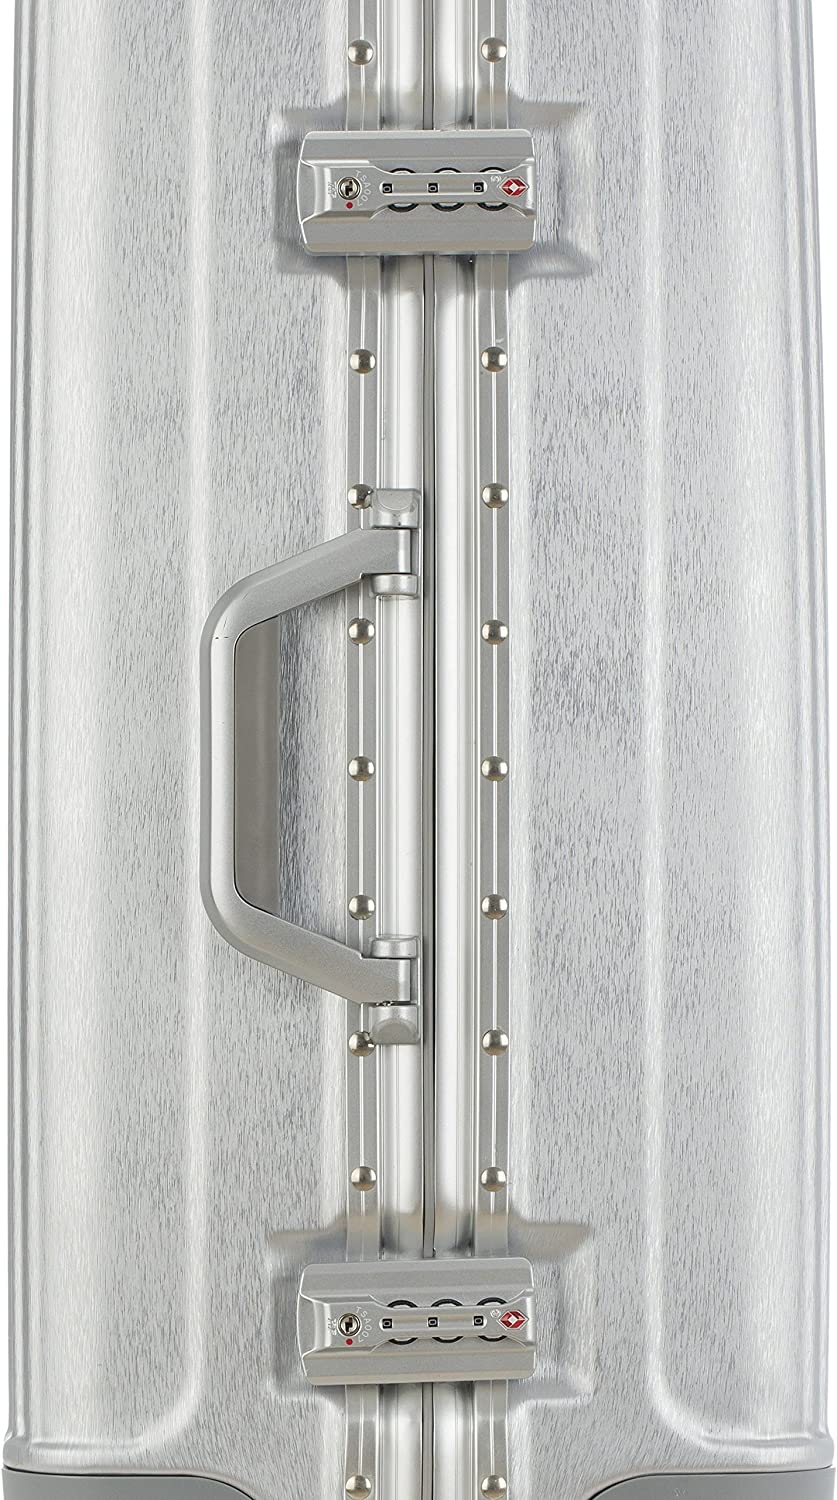 Silver Color Option Color-Coordinated Accents WIDE-BODY TPRC 20 Luna Collection Carry-On Luggage with Sturdy Aluminum Frame and Dual TSA Locks